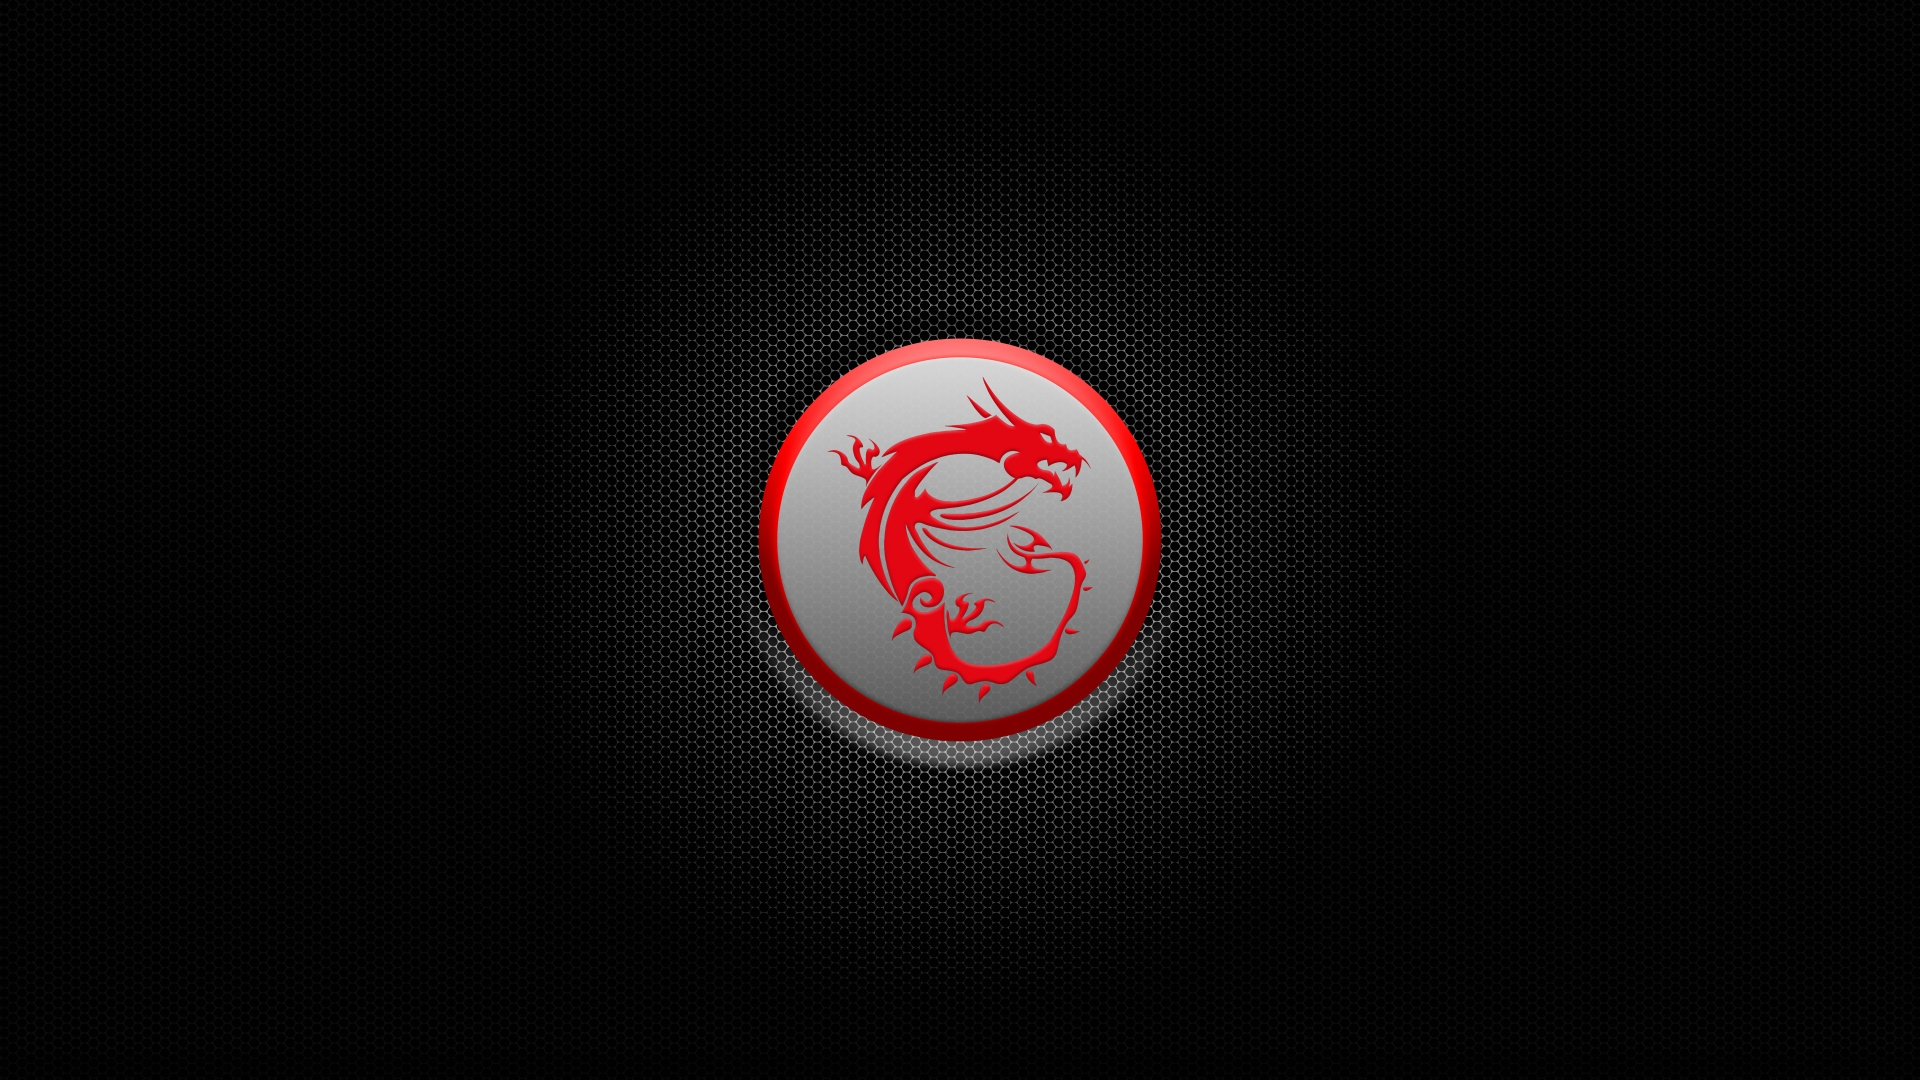 Msi background picture